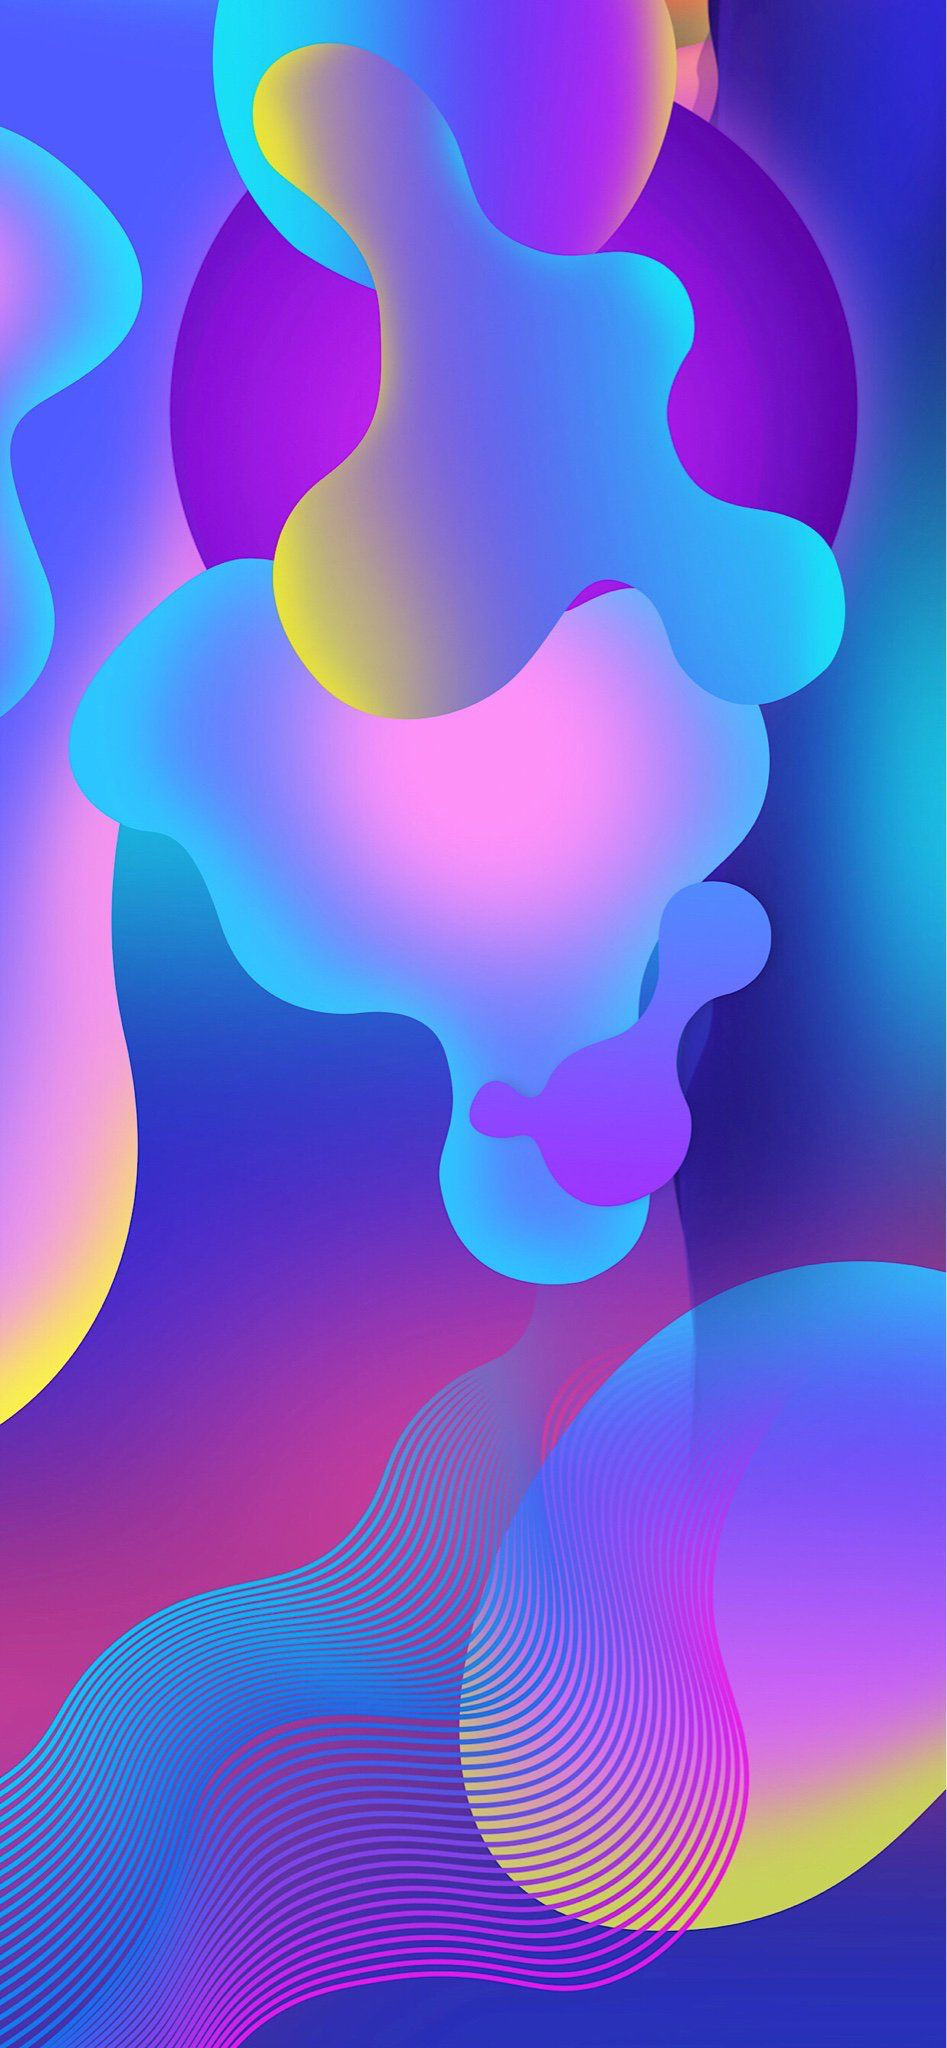 Iphone Xs Max Wallpaper Solid Blurred Colors In 2019 Iphone